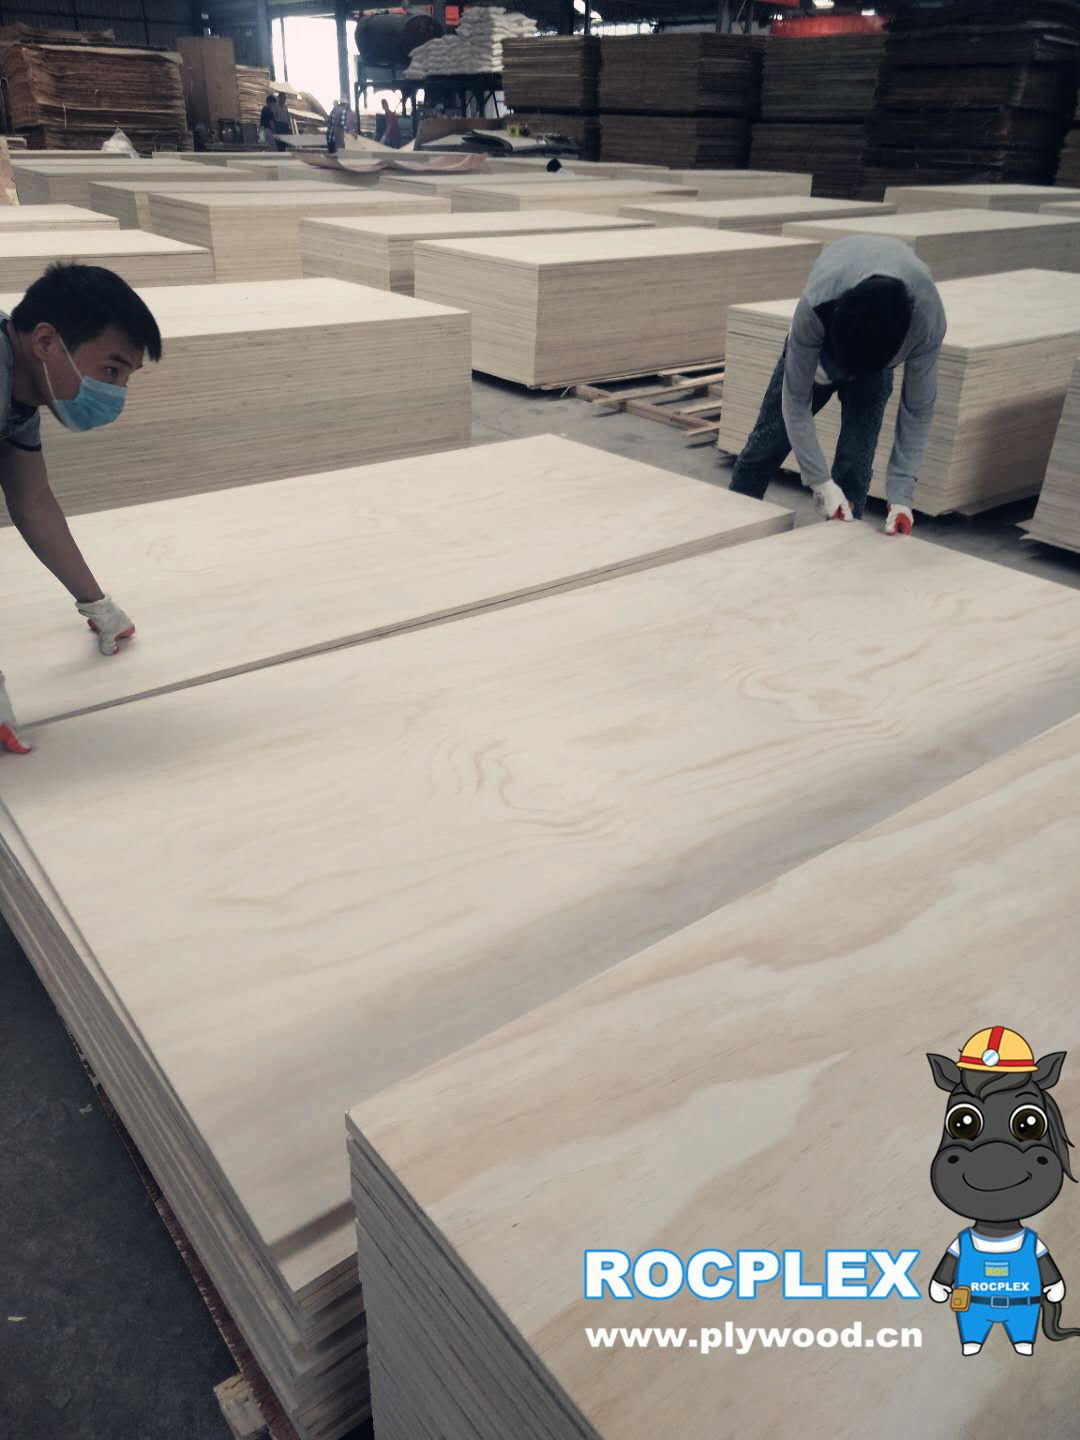 Rocplex Pin Plywood With High Quality And Best Price W Plywood Suppliers Lvl Beam Shuttering Plywood